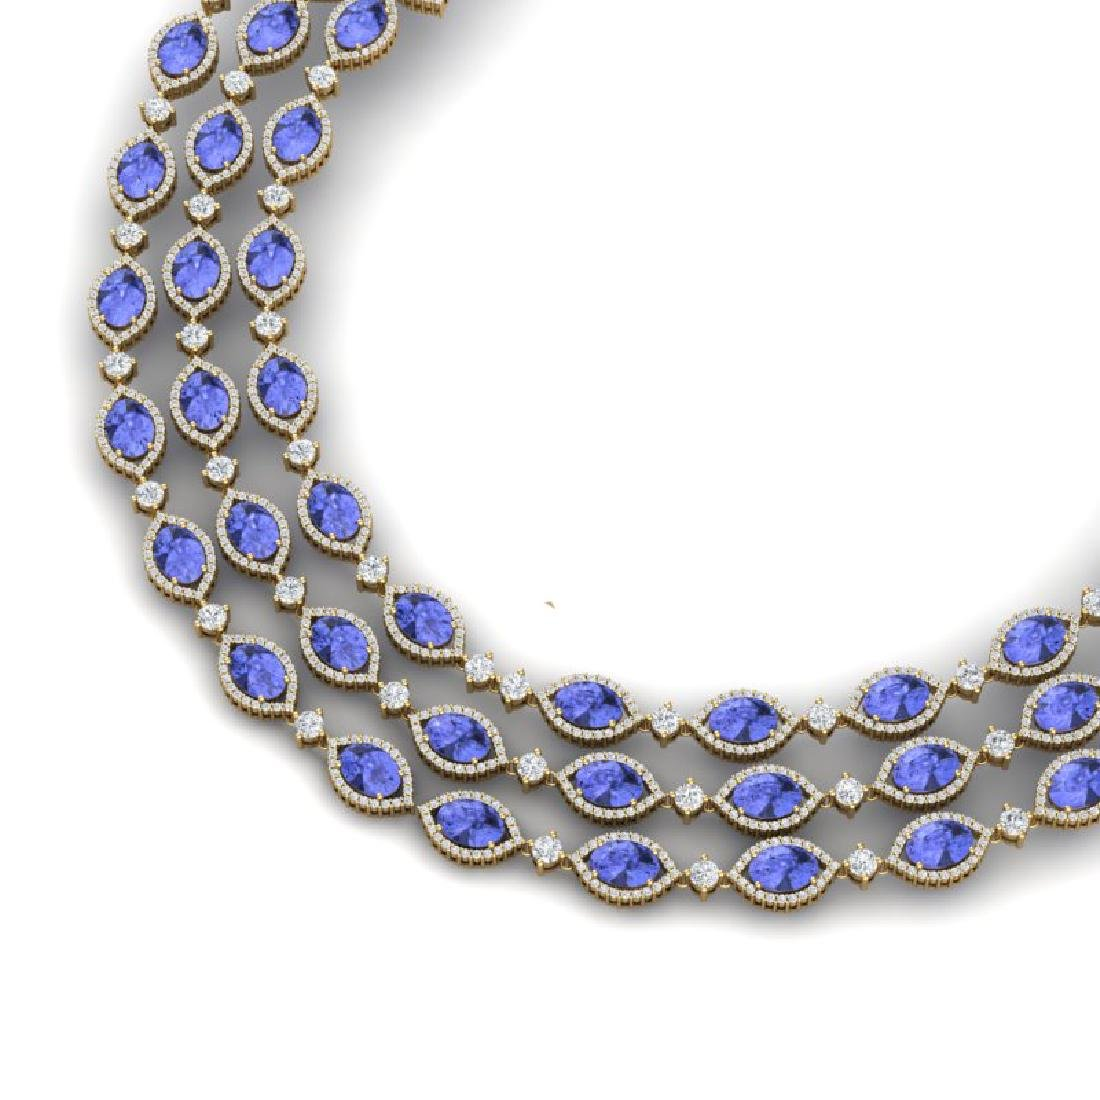 79.33 CTW Royalty Tanzanite & VS Diamond Necklace 18K